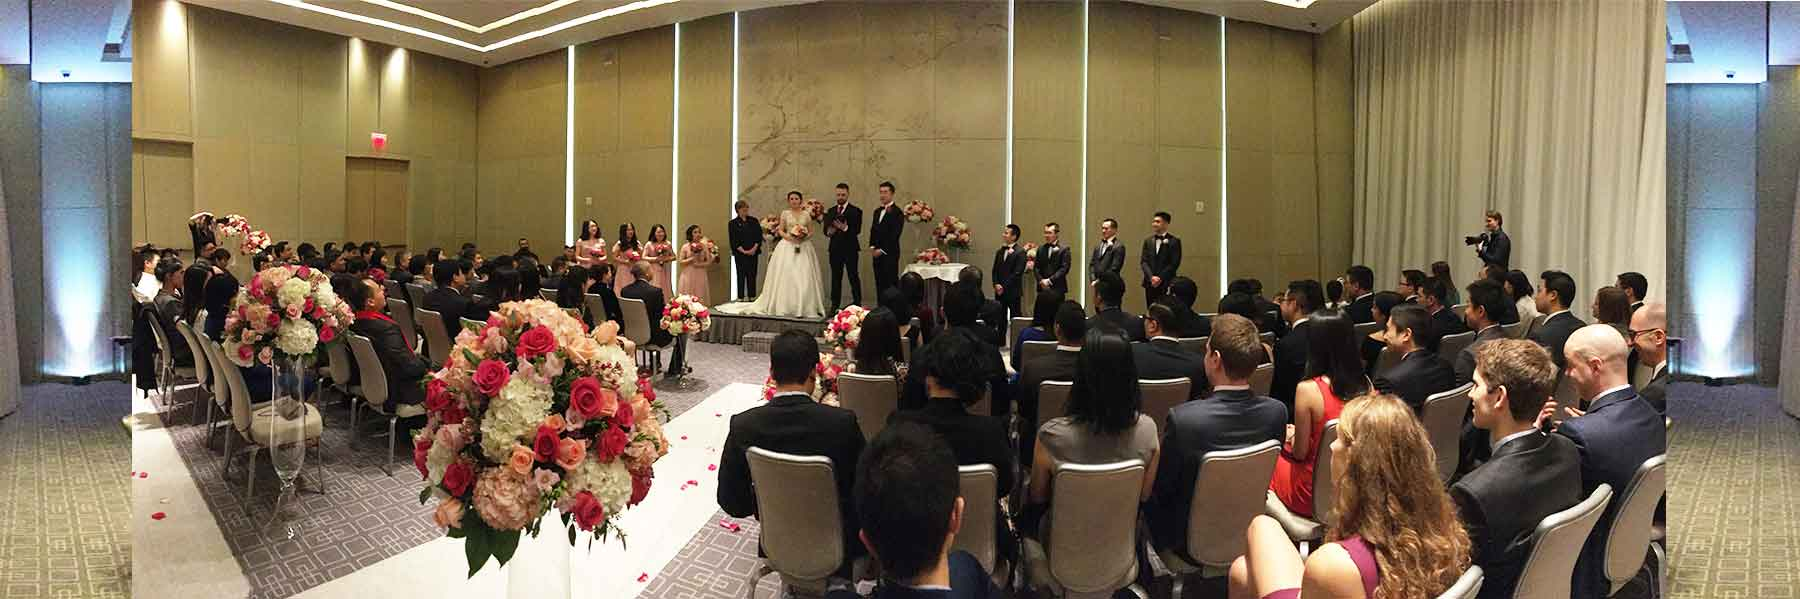 Toronto-Wedding-Ceremony-fourSeasons